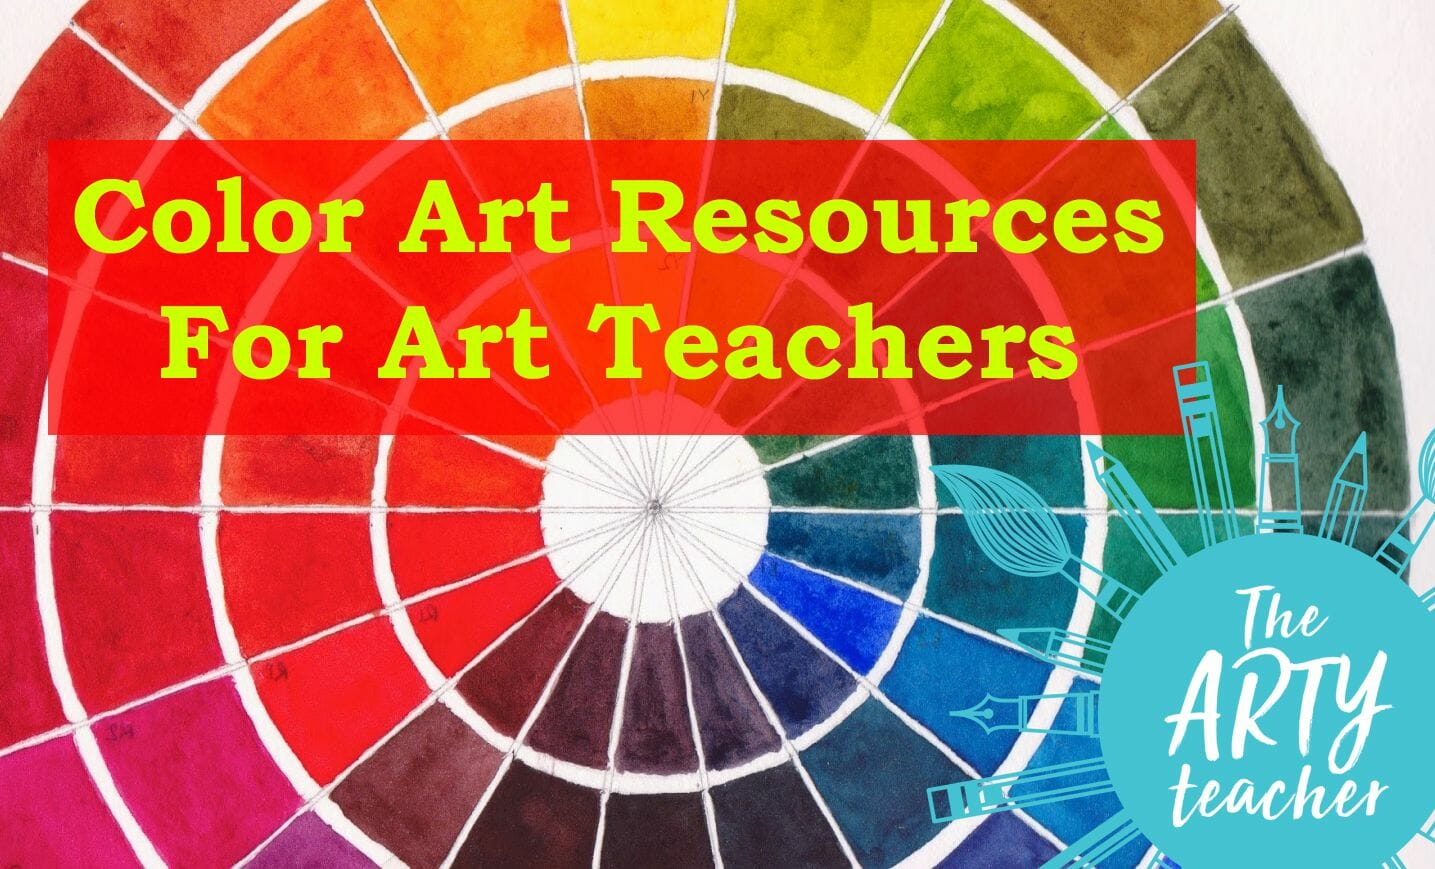 Color Art Resources For Teaching Colour Theory The Arty Teacher